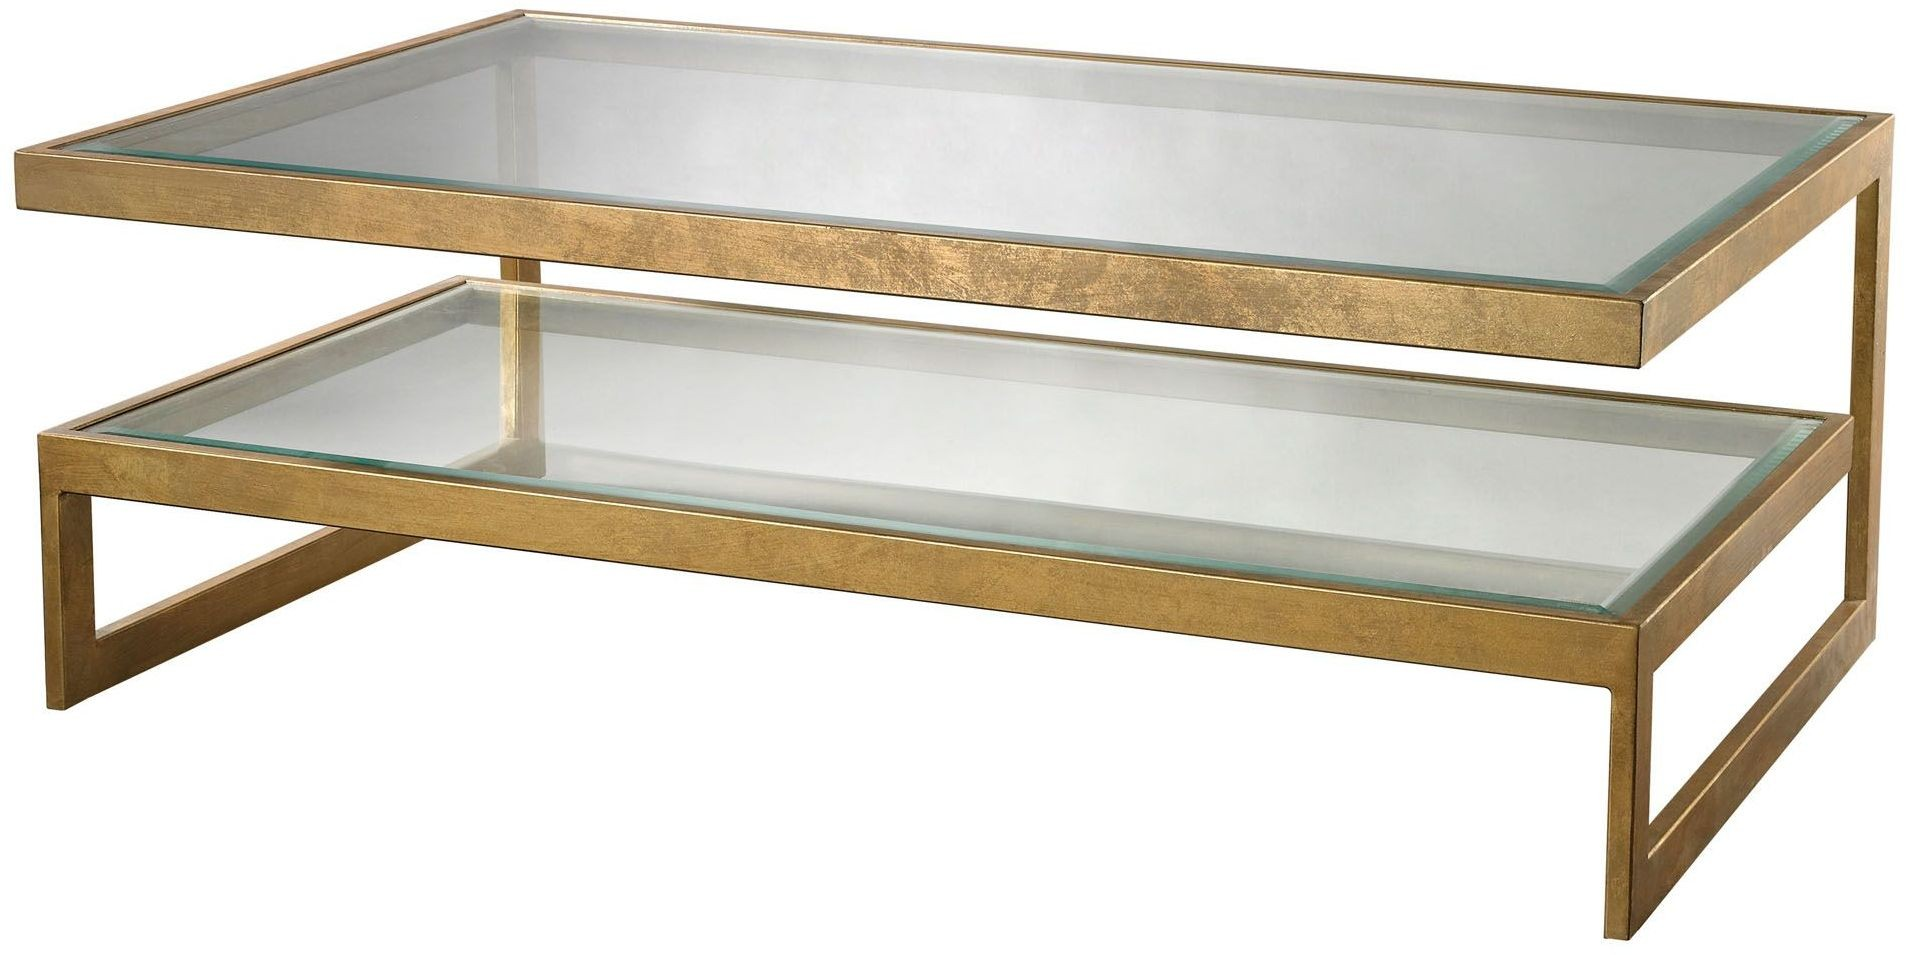 Key Antique Gold Leaf Coffee Table 114 143 Dimond Home